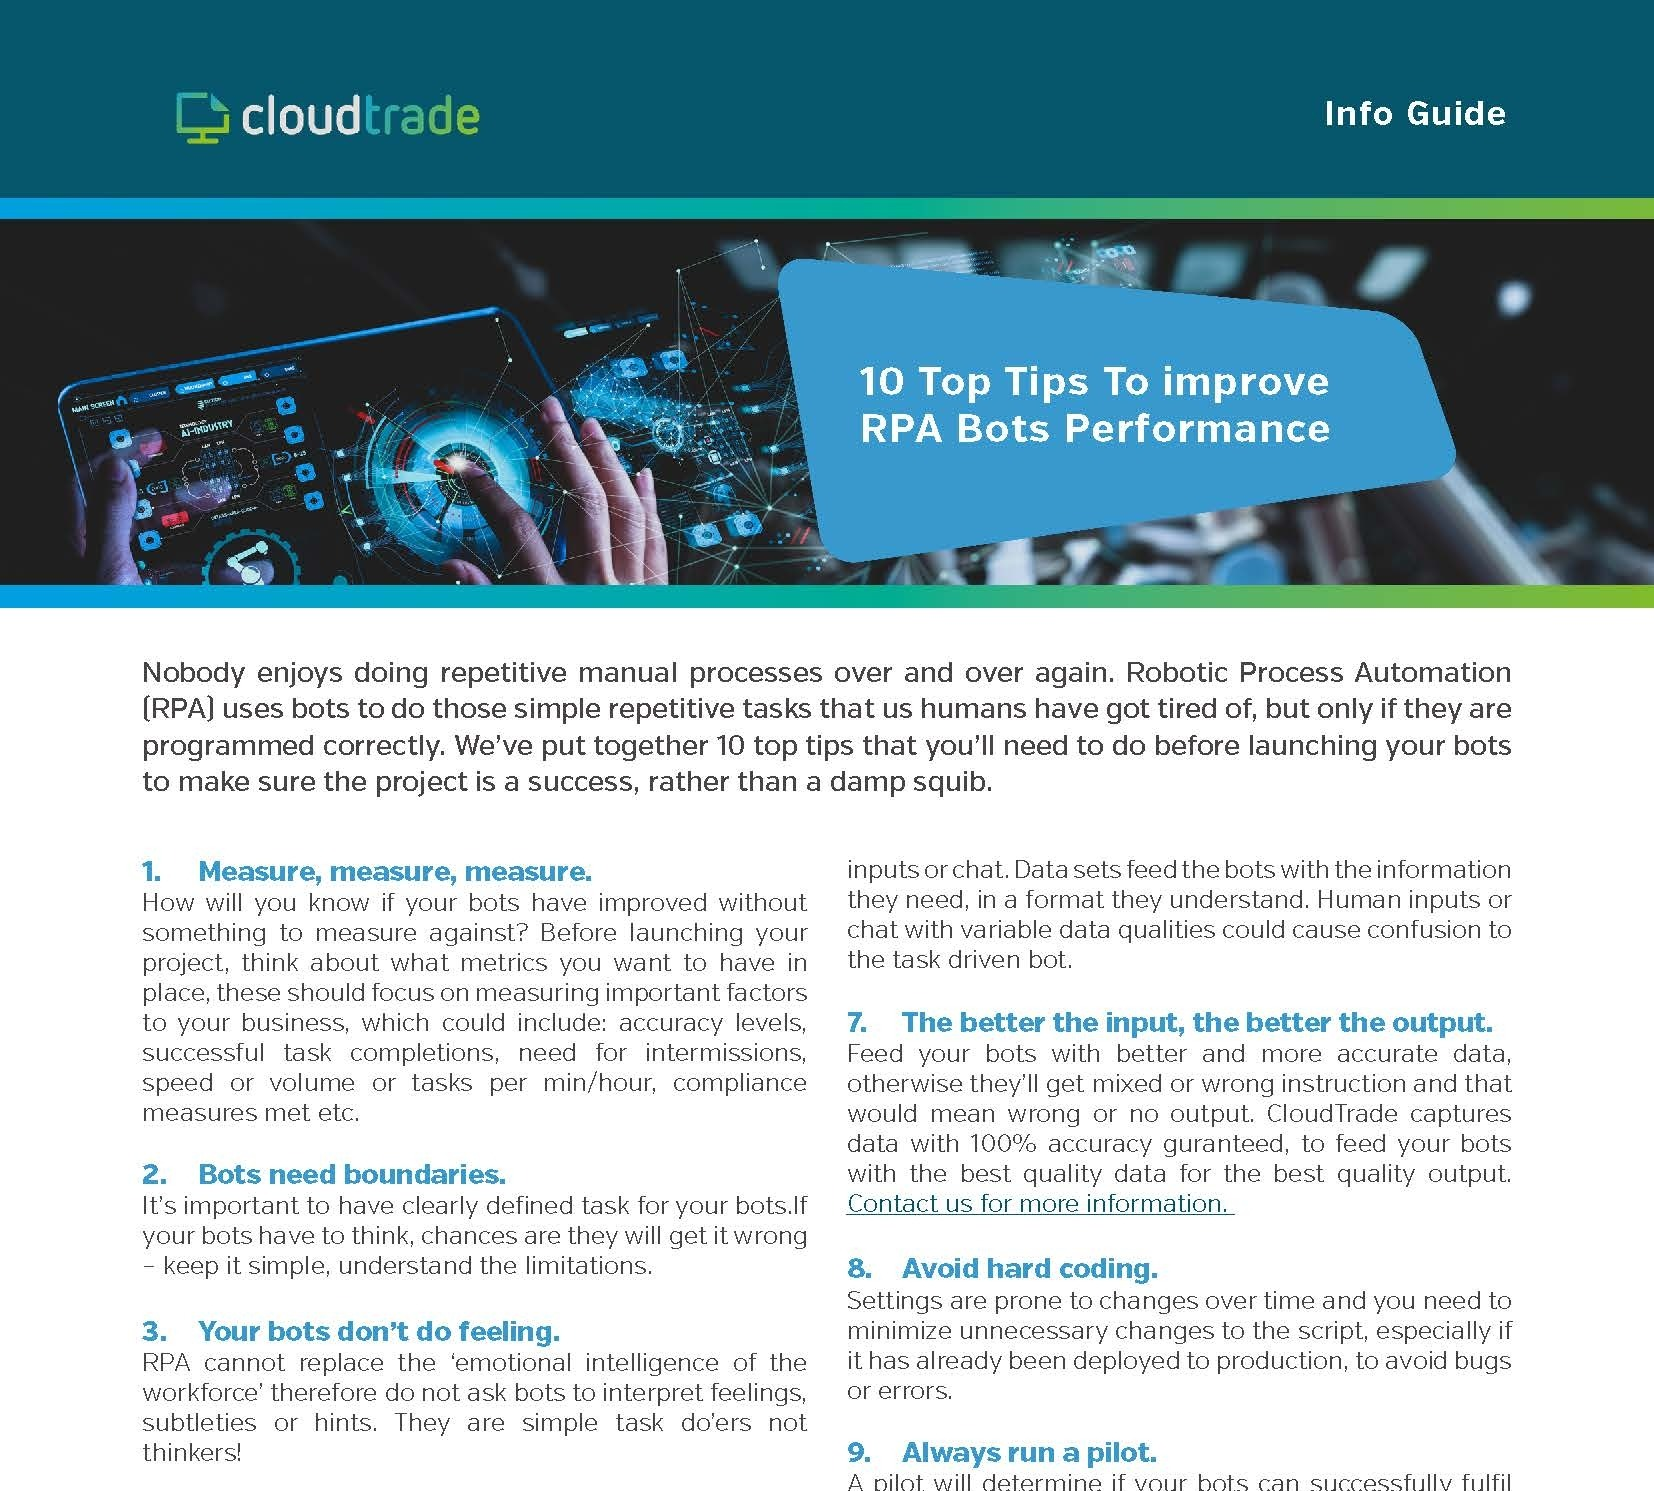 Download - 10 Top Tips to Improve RPA Bots Performance